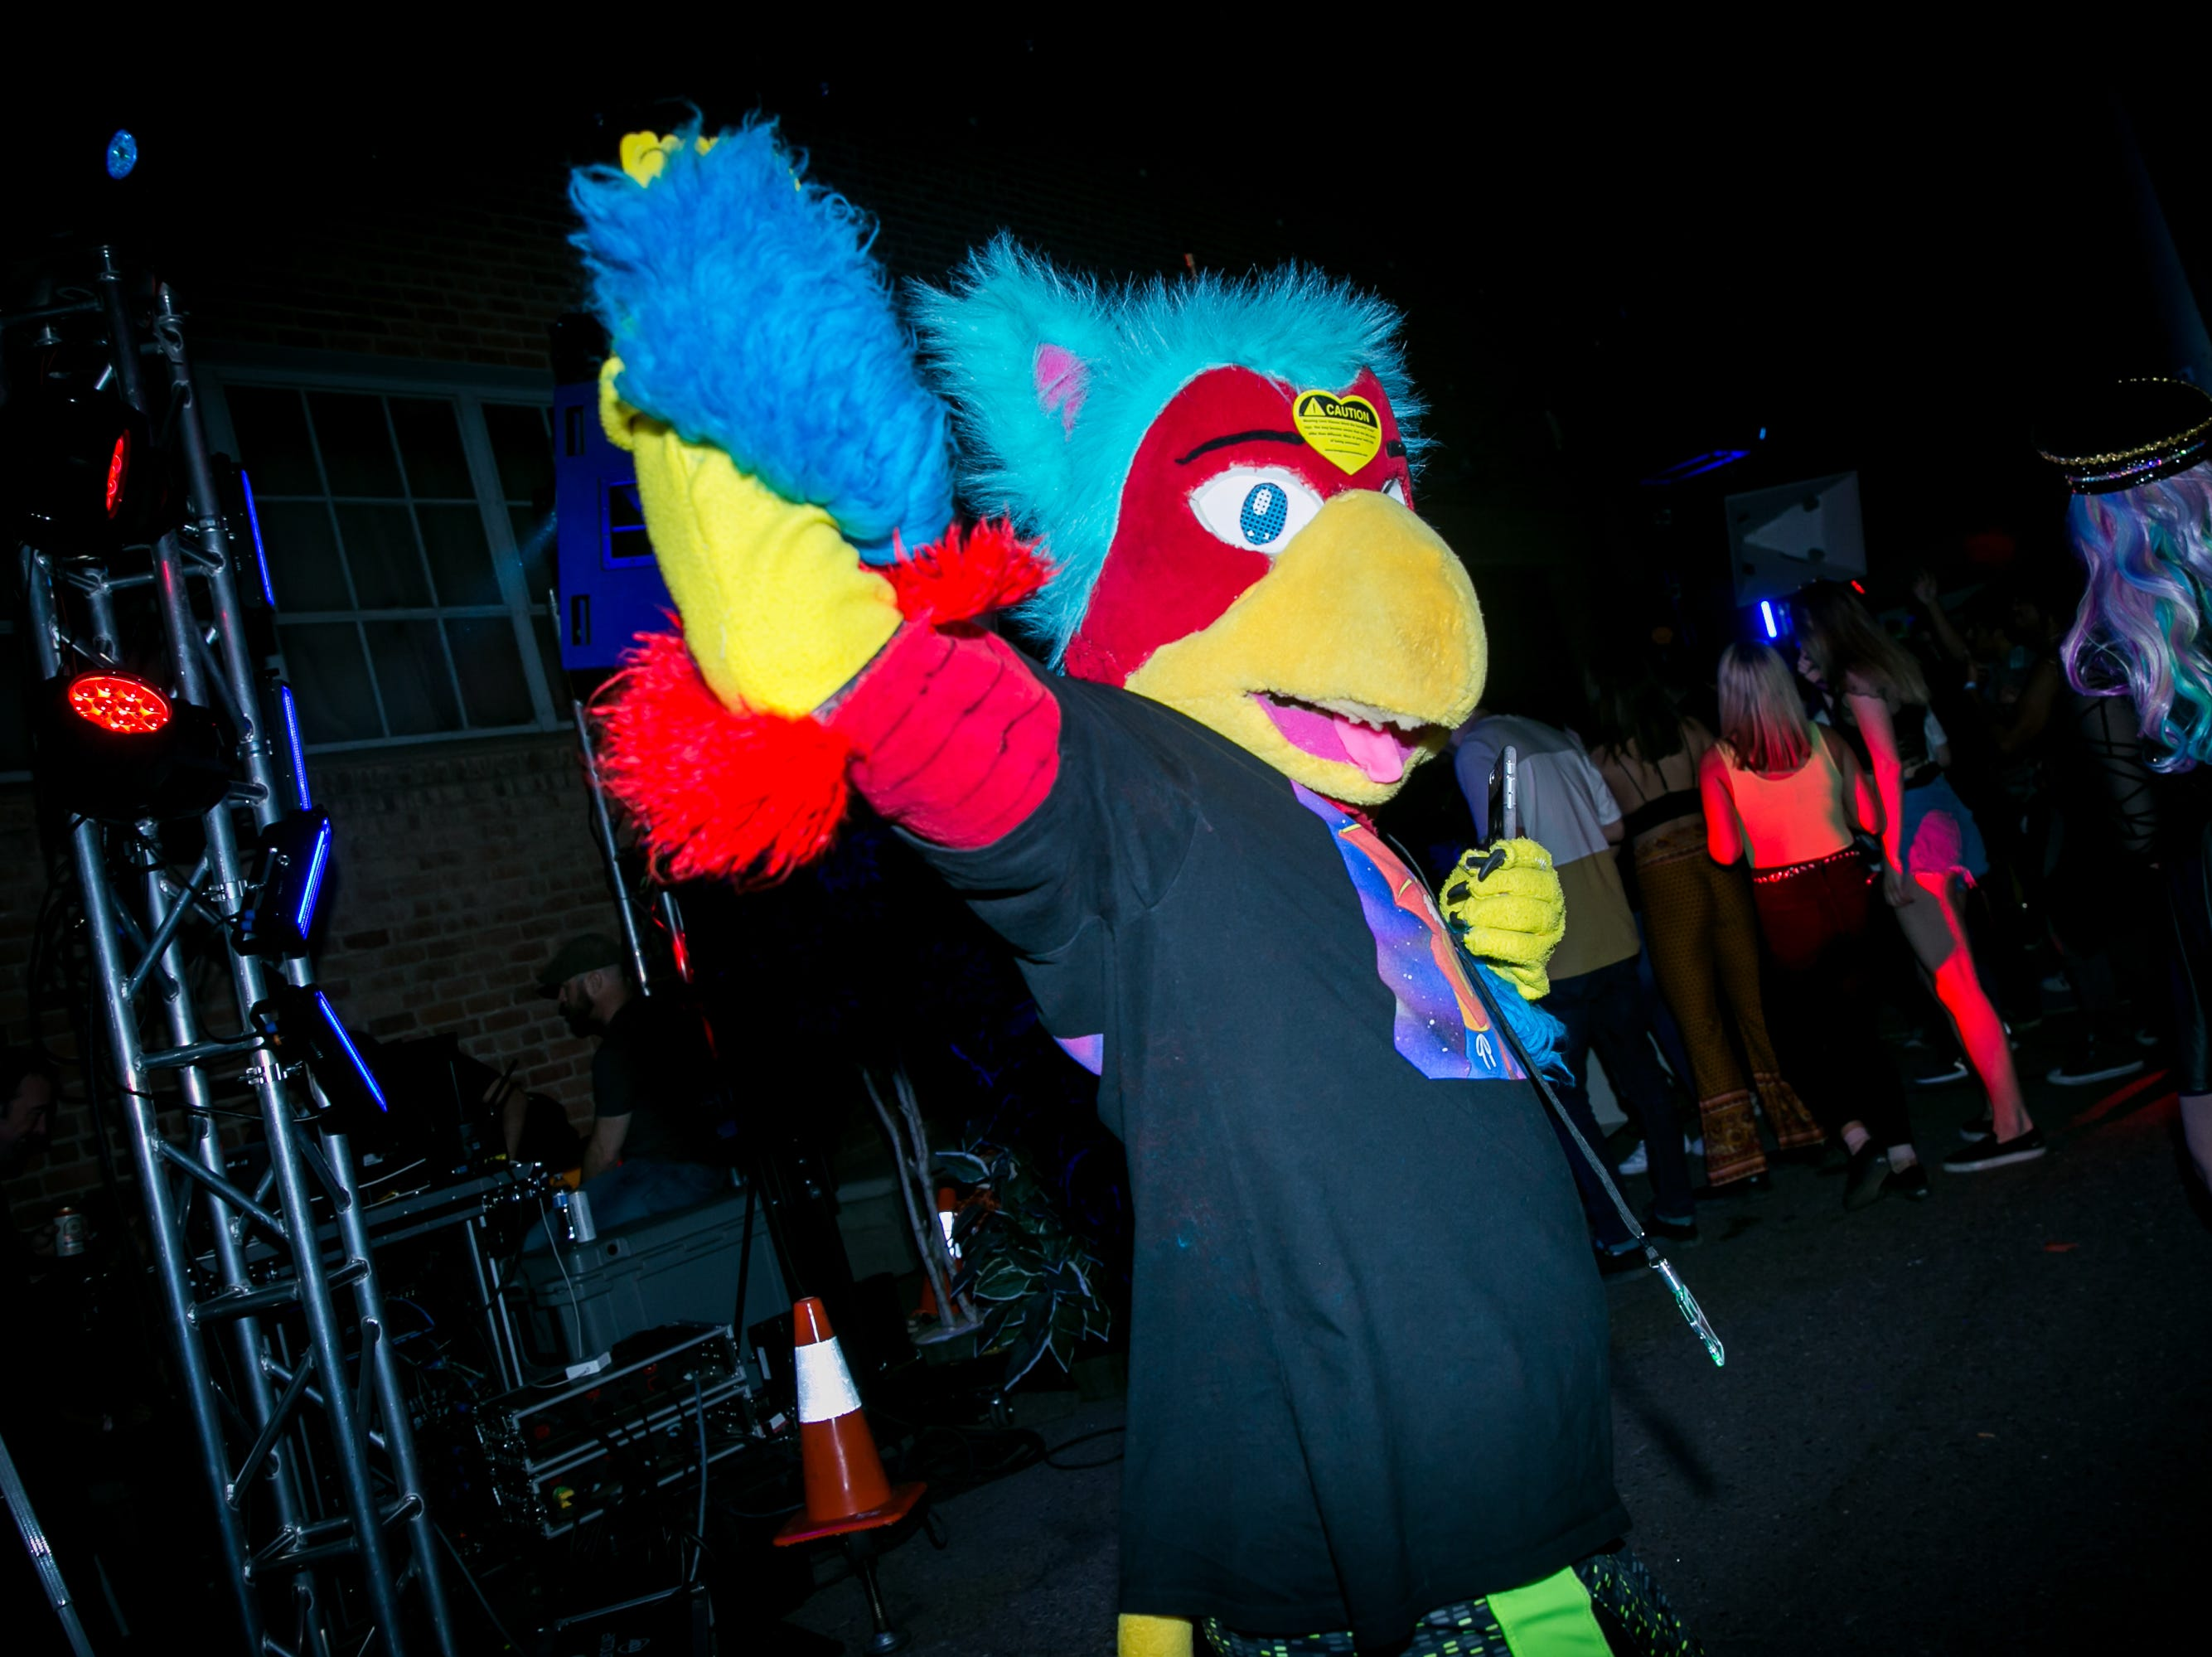 This bird was ready to party at the Full Moon Festival at the Pressroom on March 23, 2019.